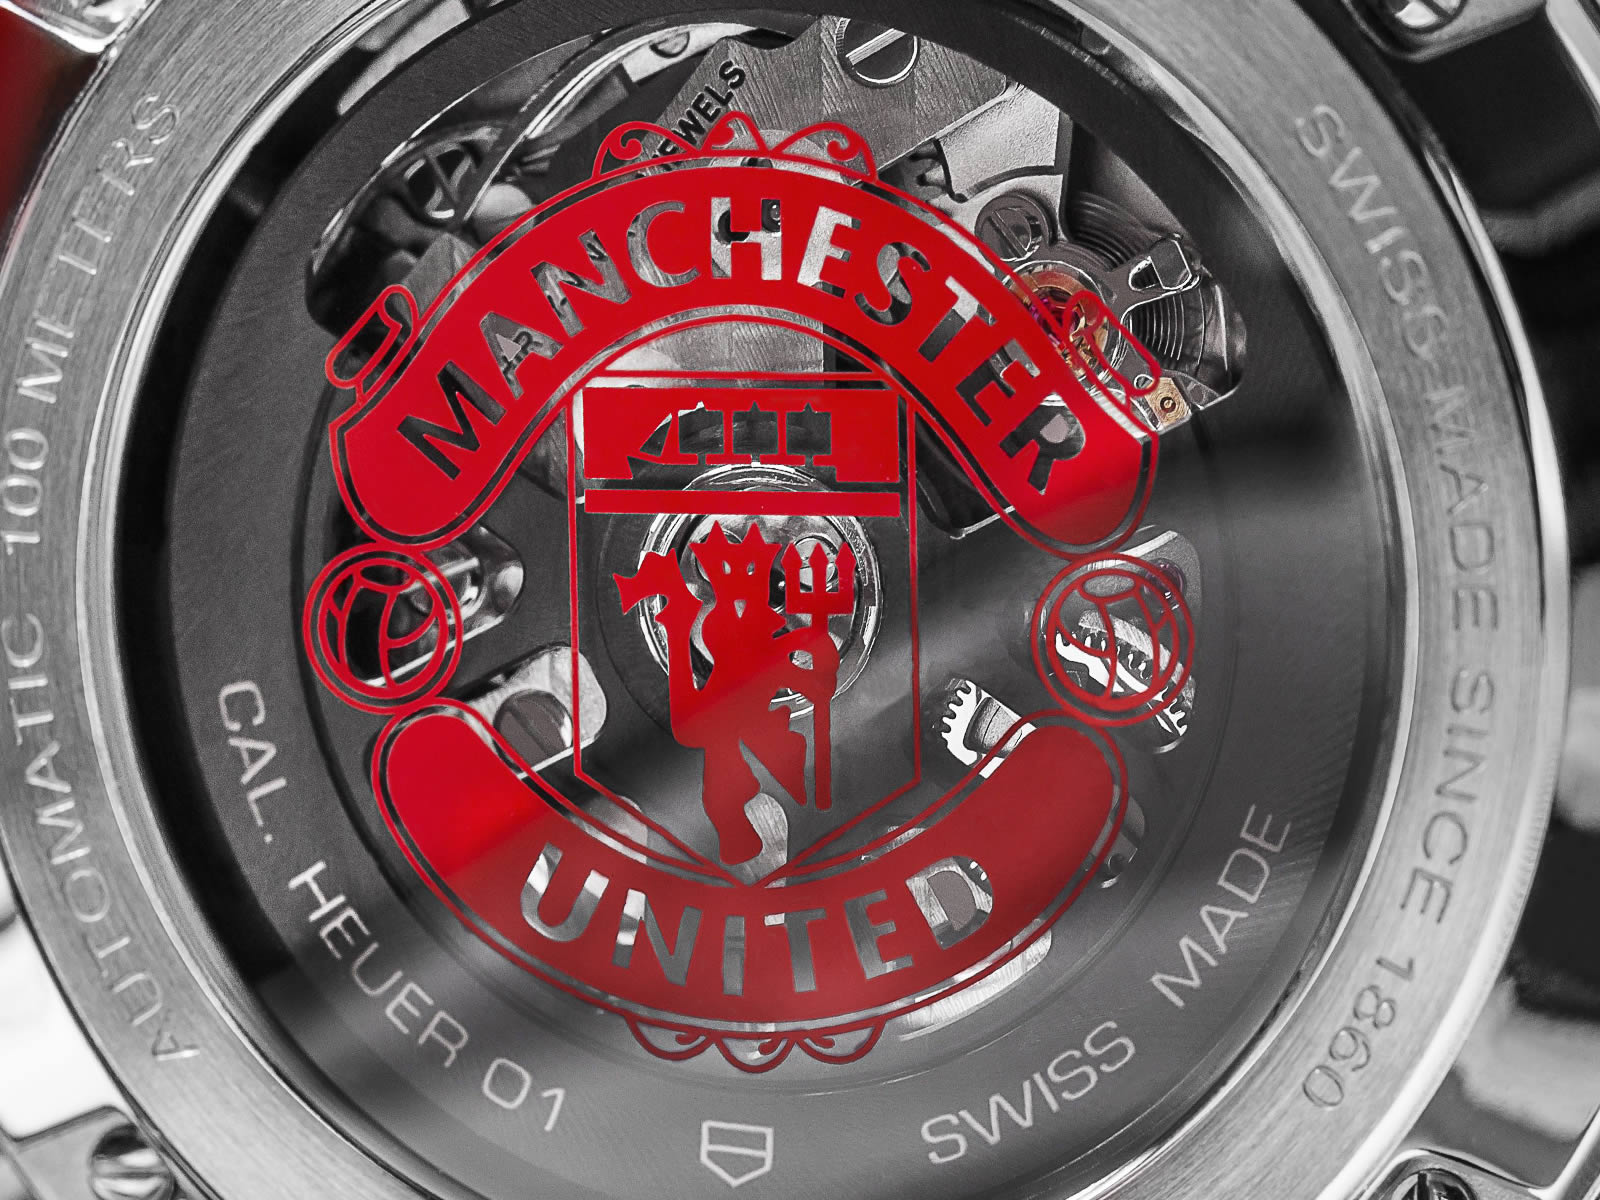 car201m-ft6156-tag-heuer-carrera-heuer-01-manchester-united-special-edition-7-.jpg